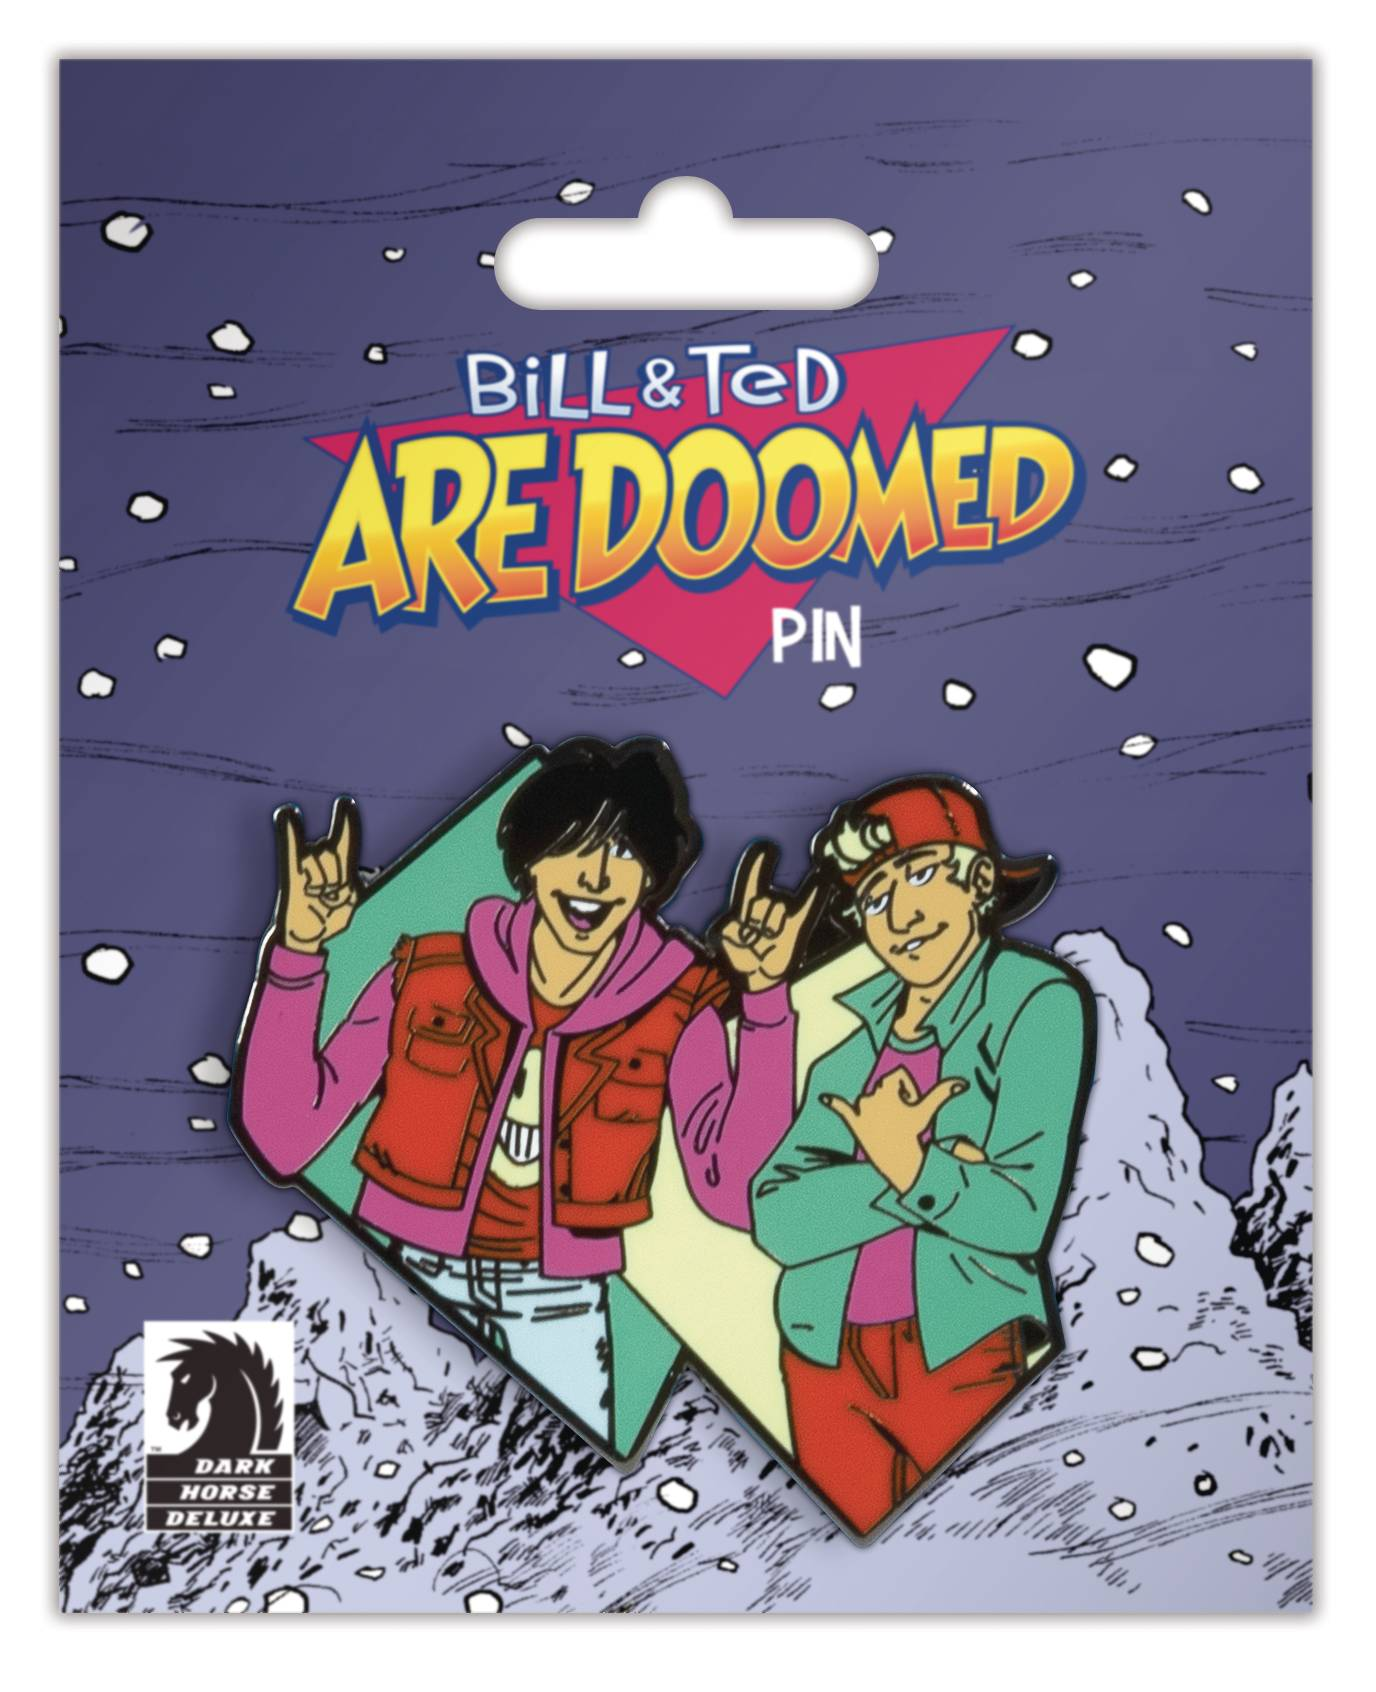 BILL & TED ARE DOOMED PIN